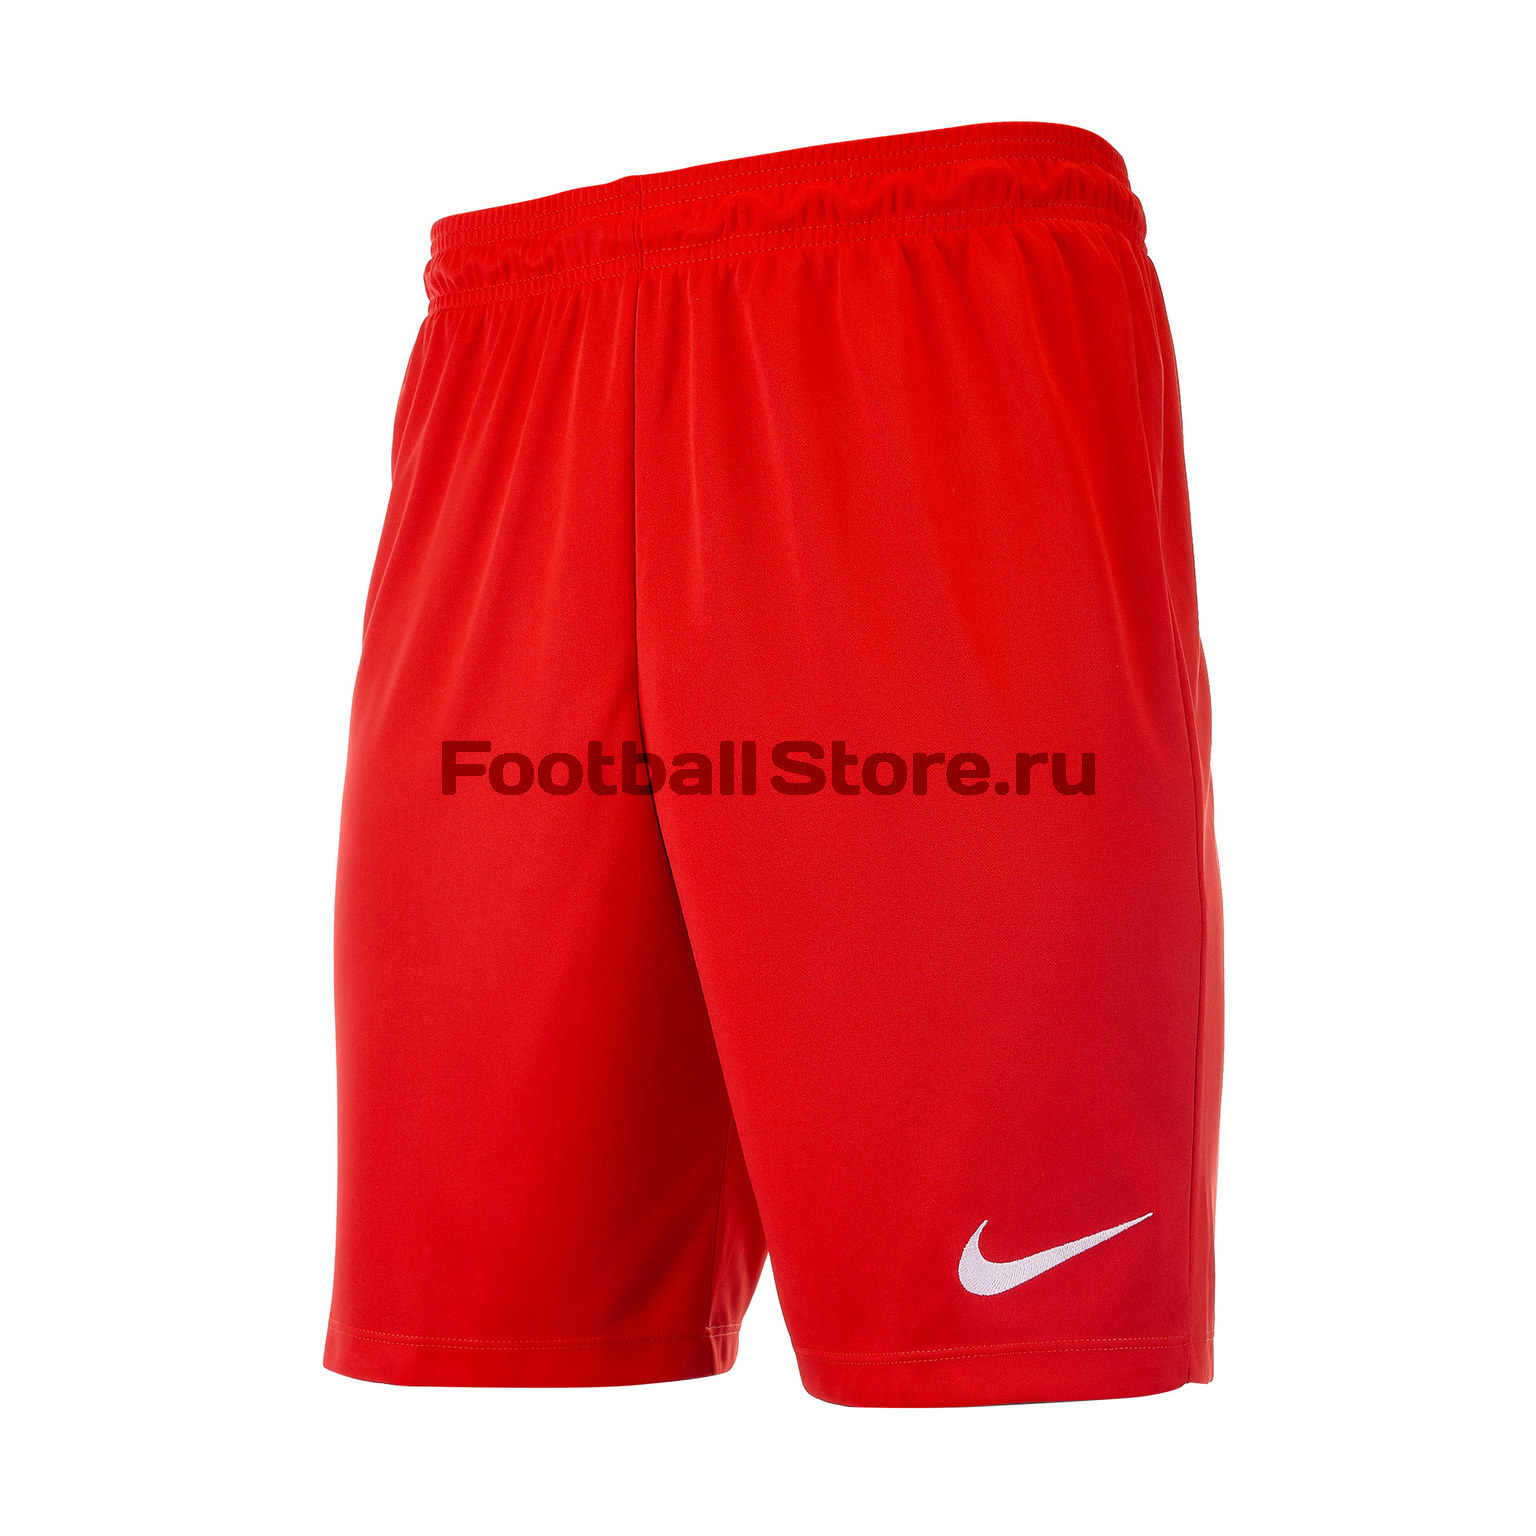 Шорты Nike Park II KNIT Short NB 725887-657